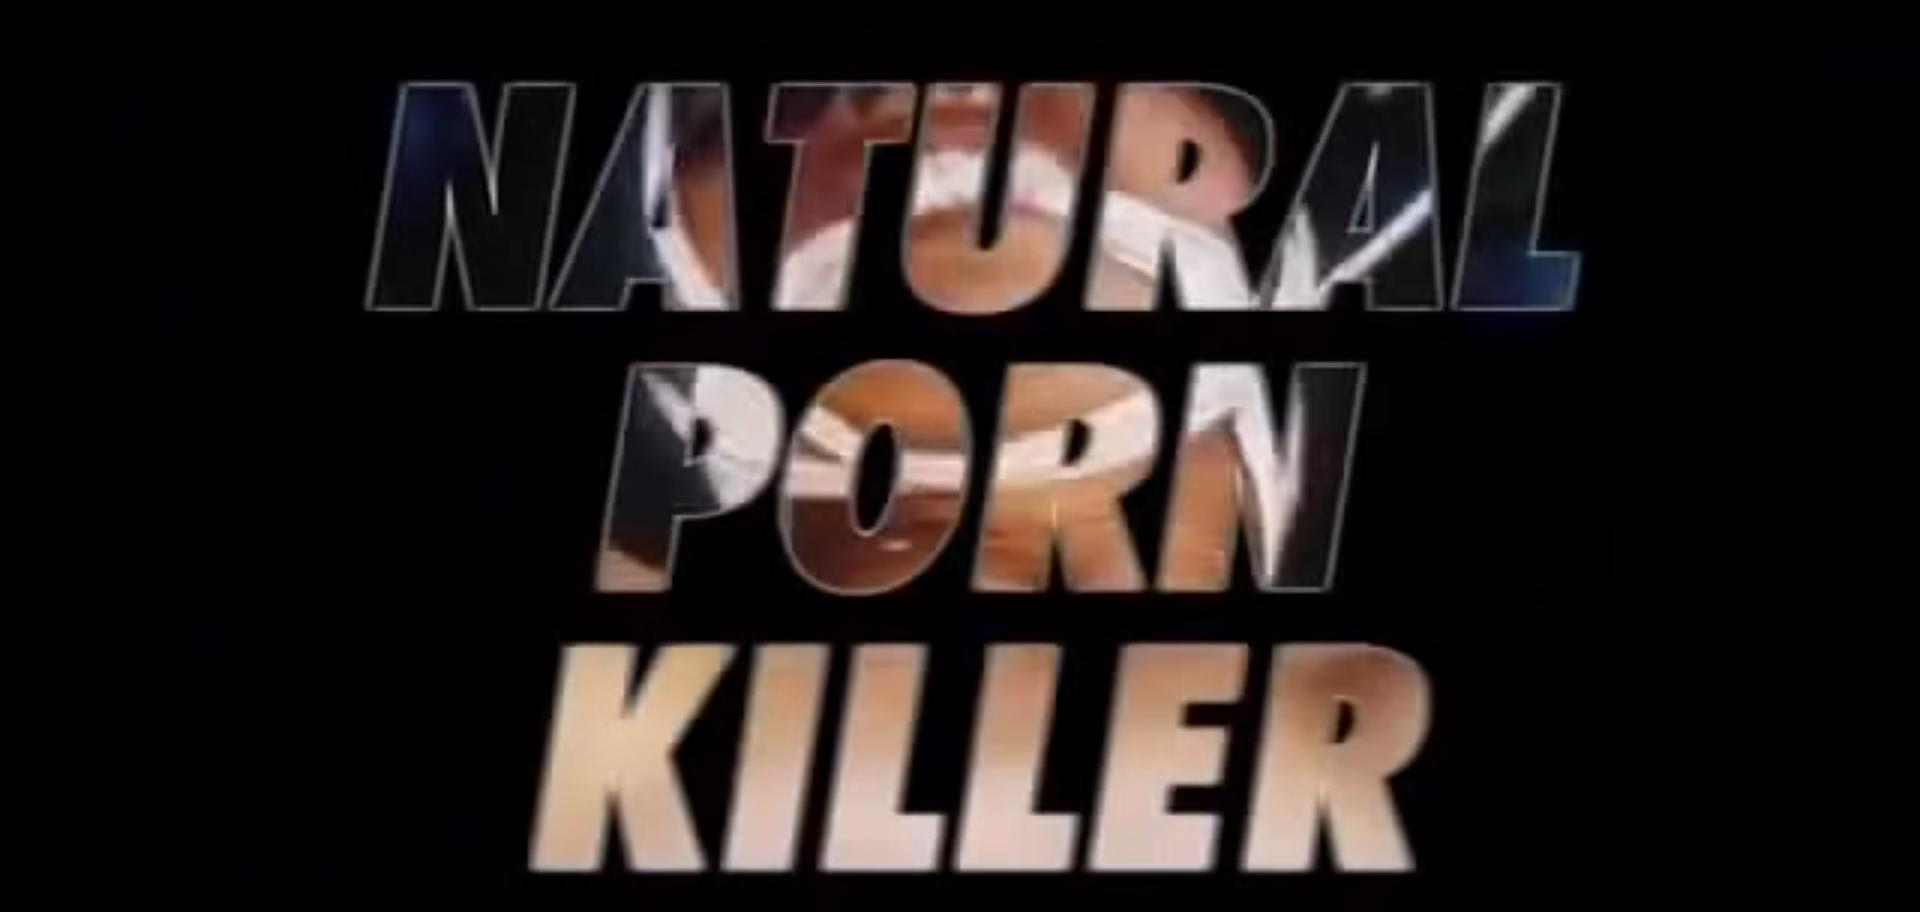 Ted Bundy: Natural Porn Killer (2006) (TV) Watch Full Movie Free Online